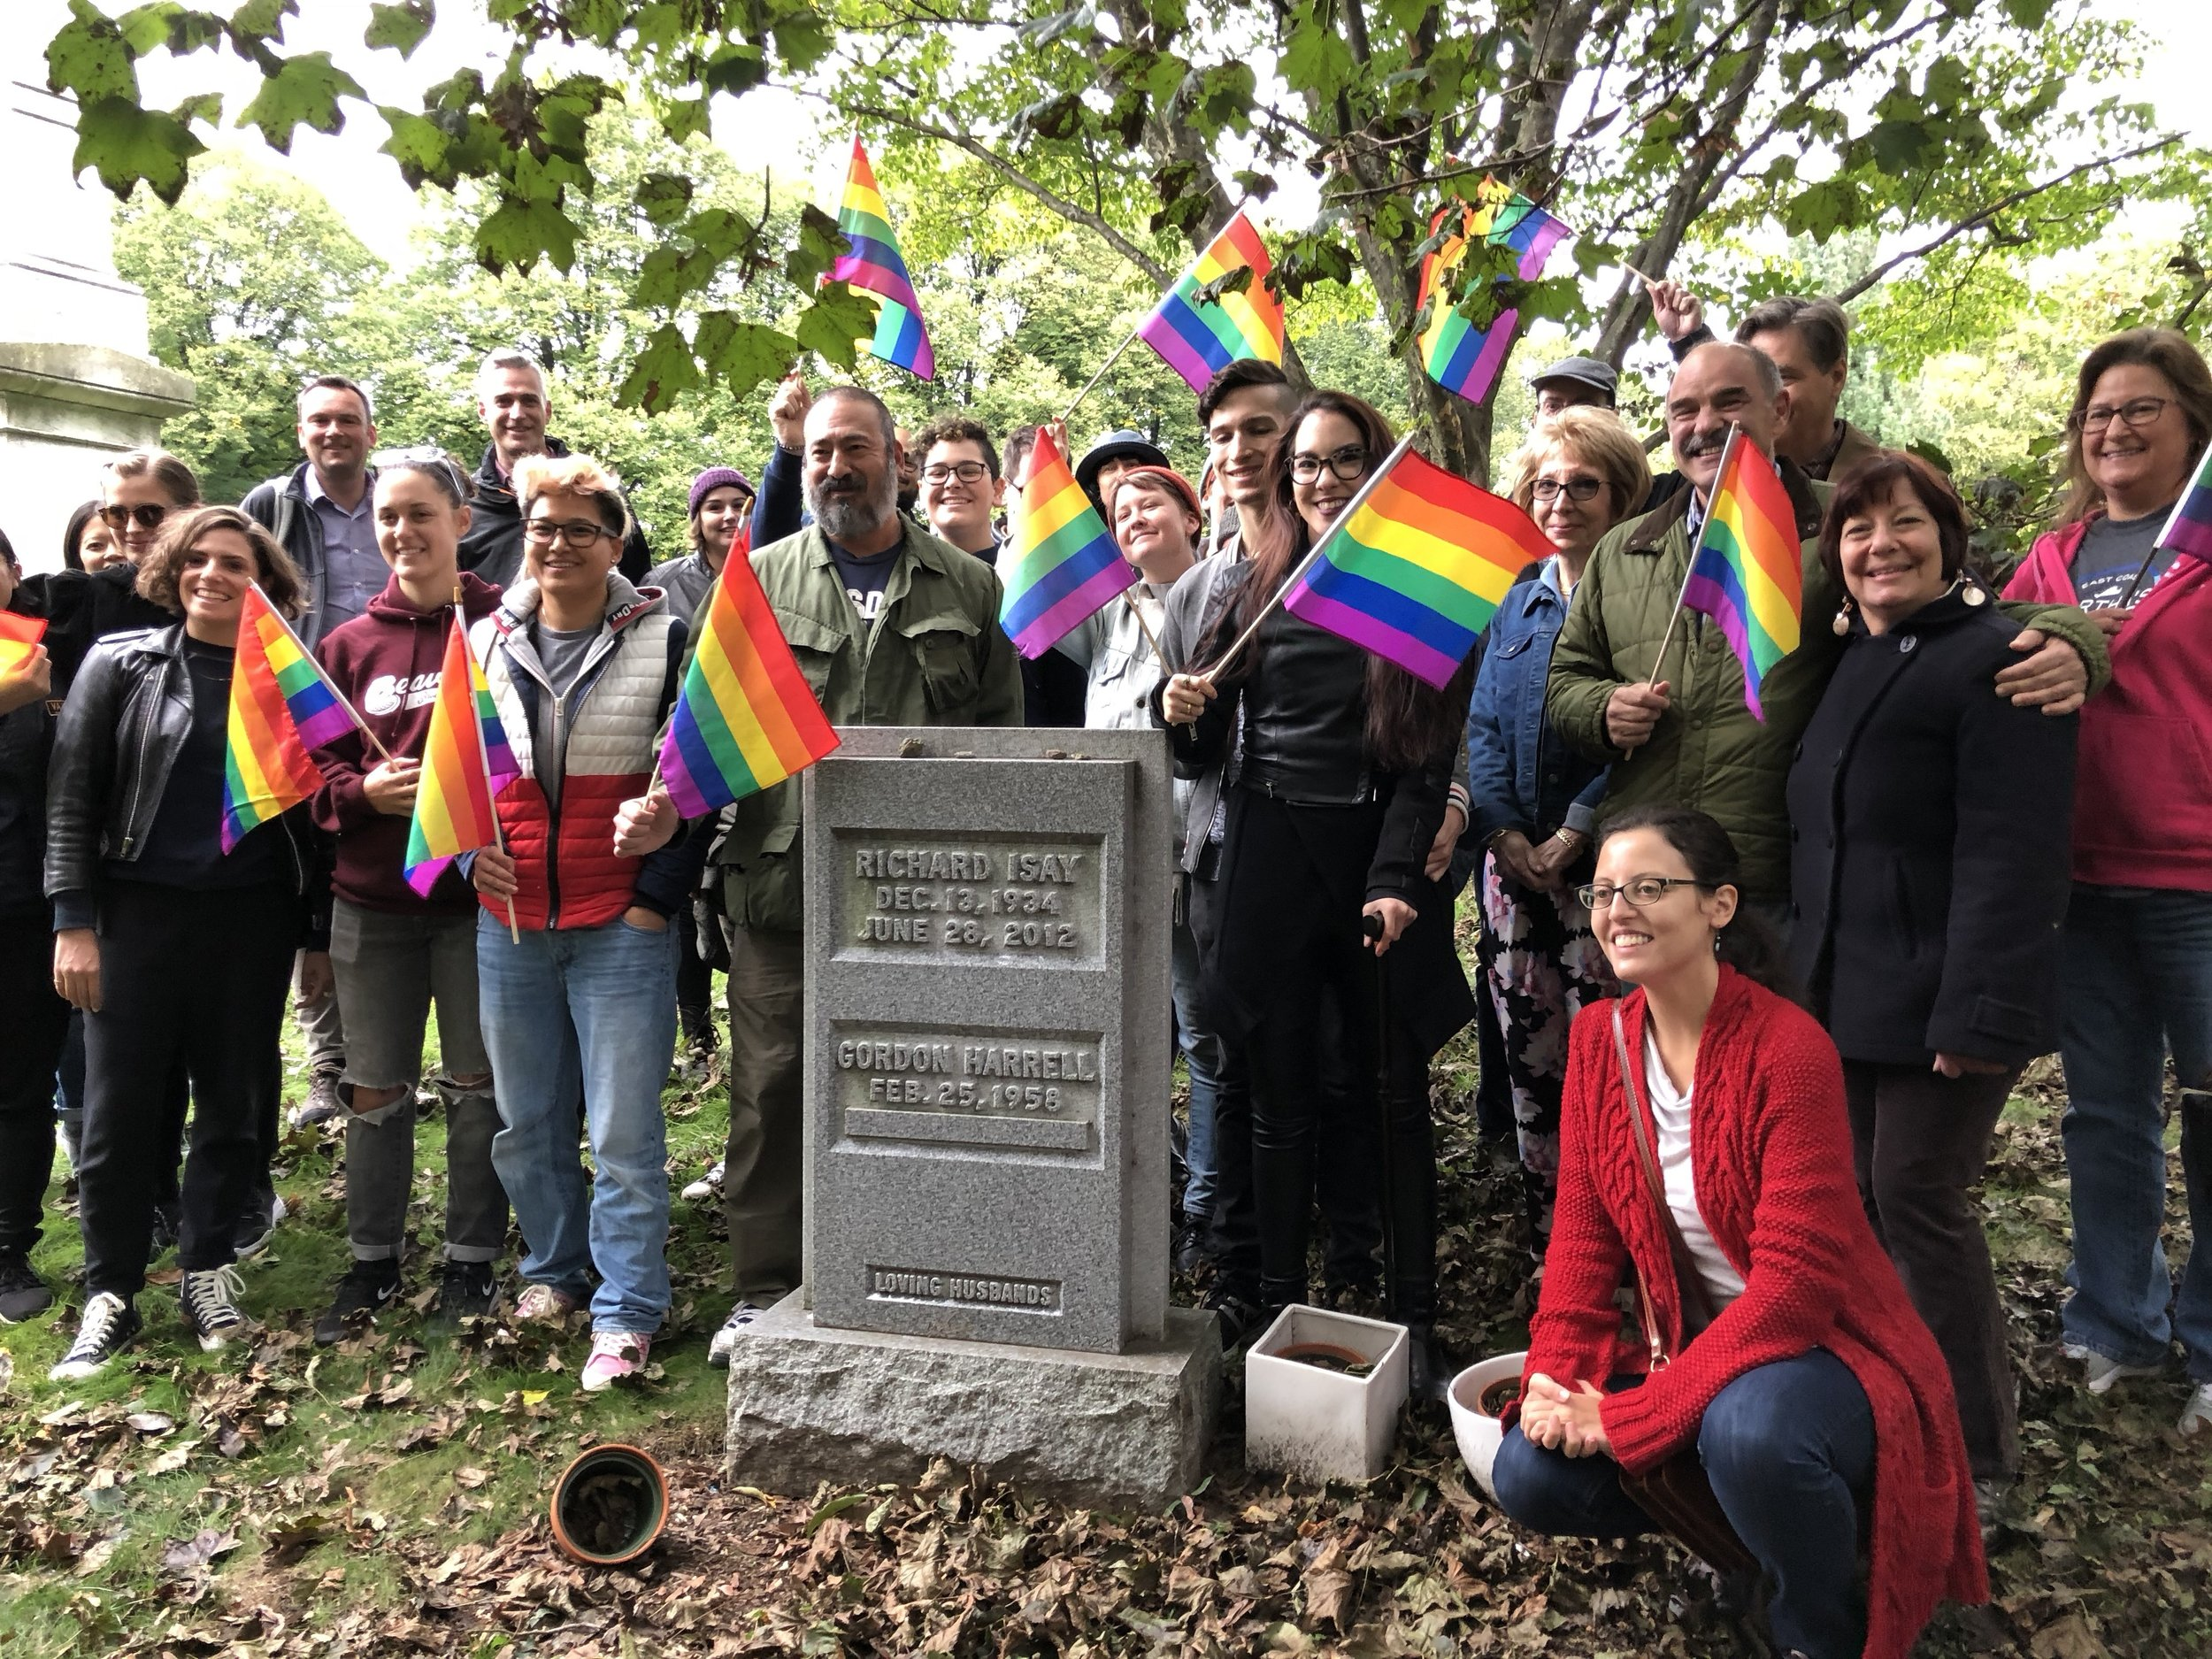 Photo courtesy of the NYC LGBT Historic Sites Project